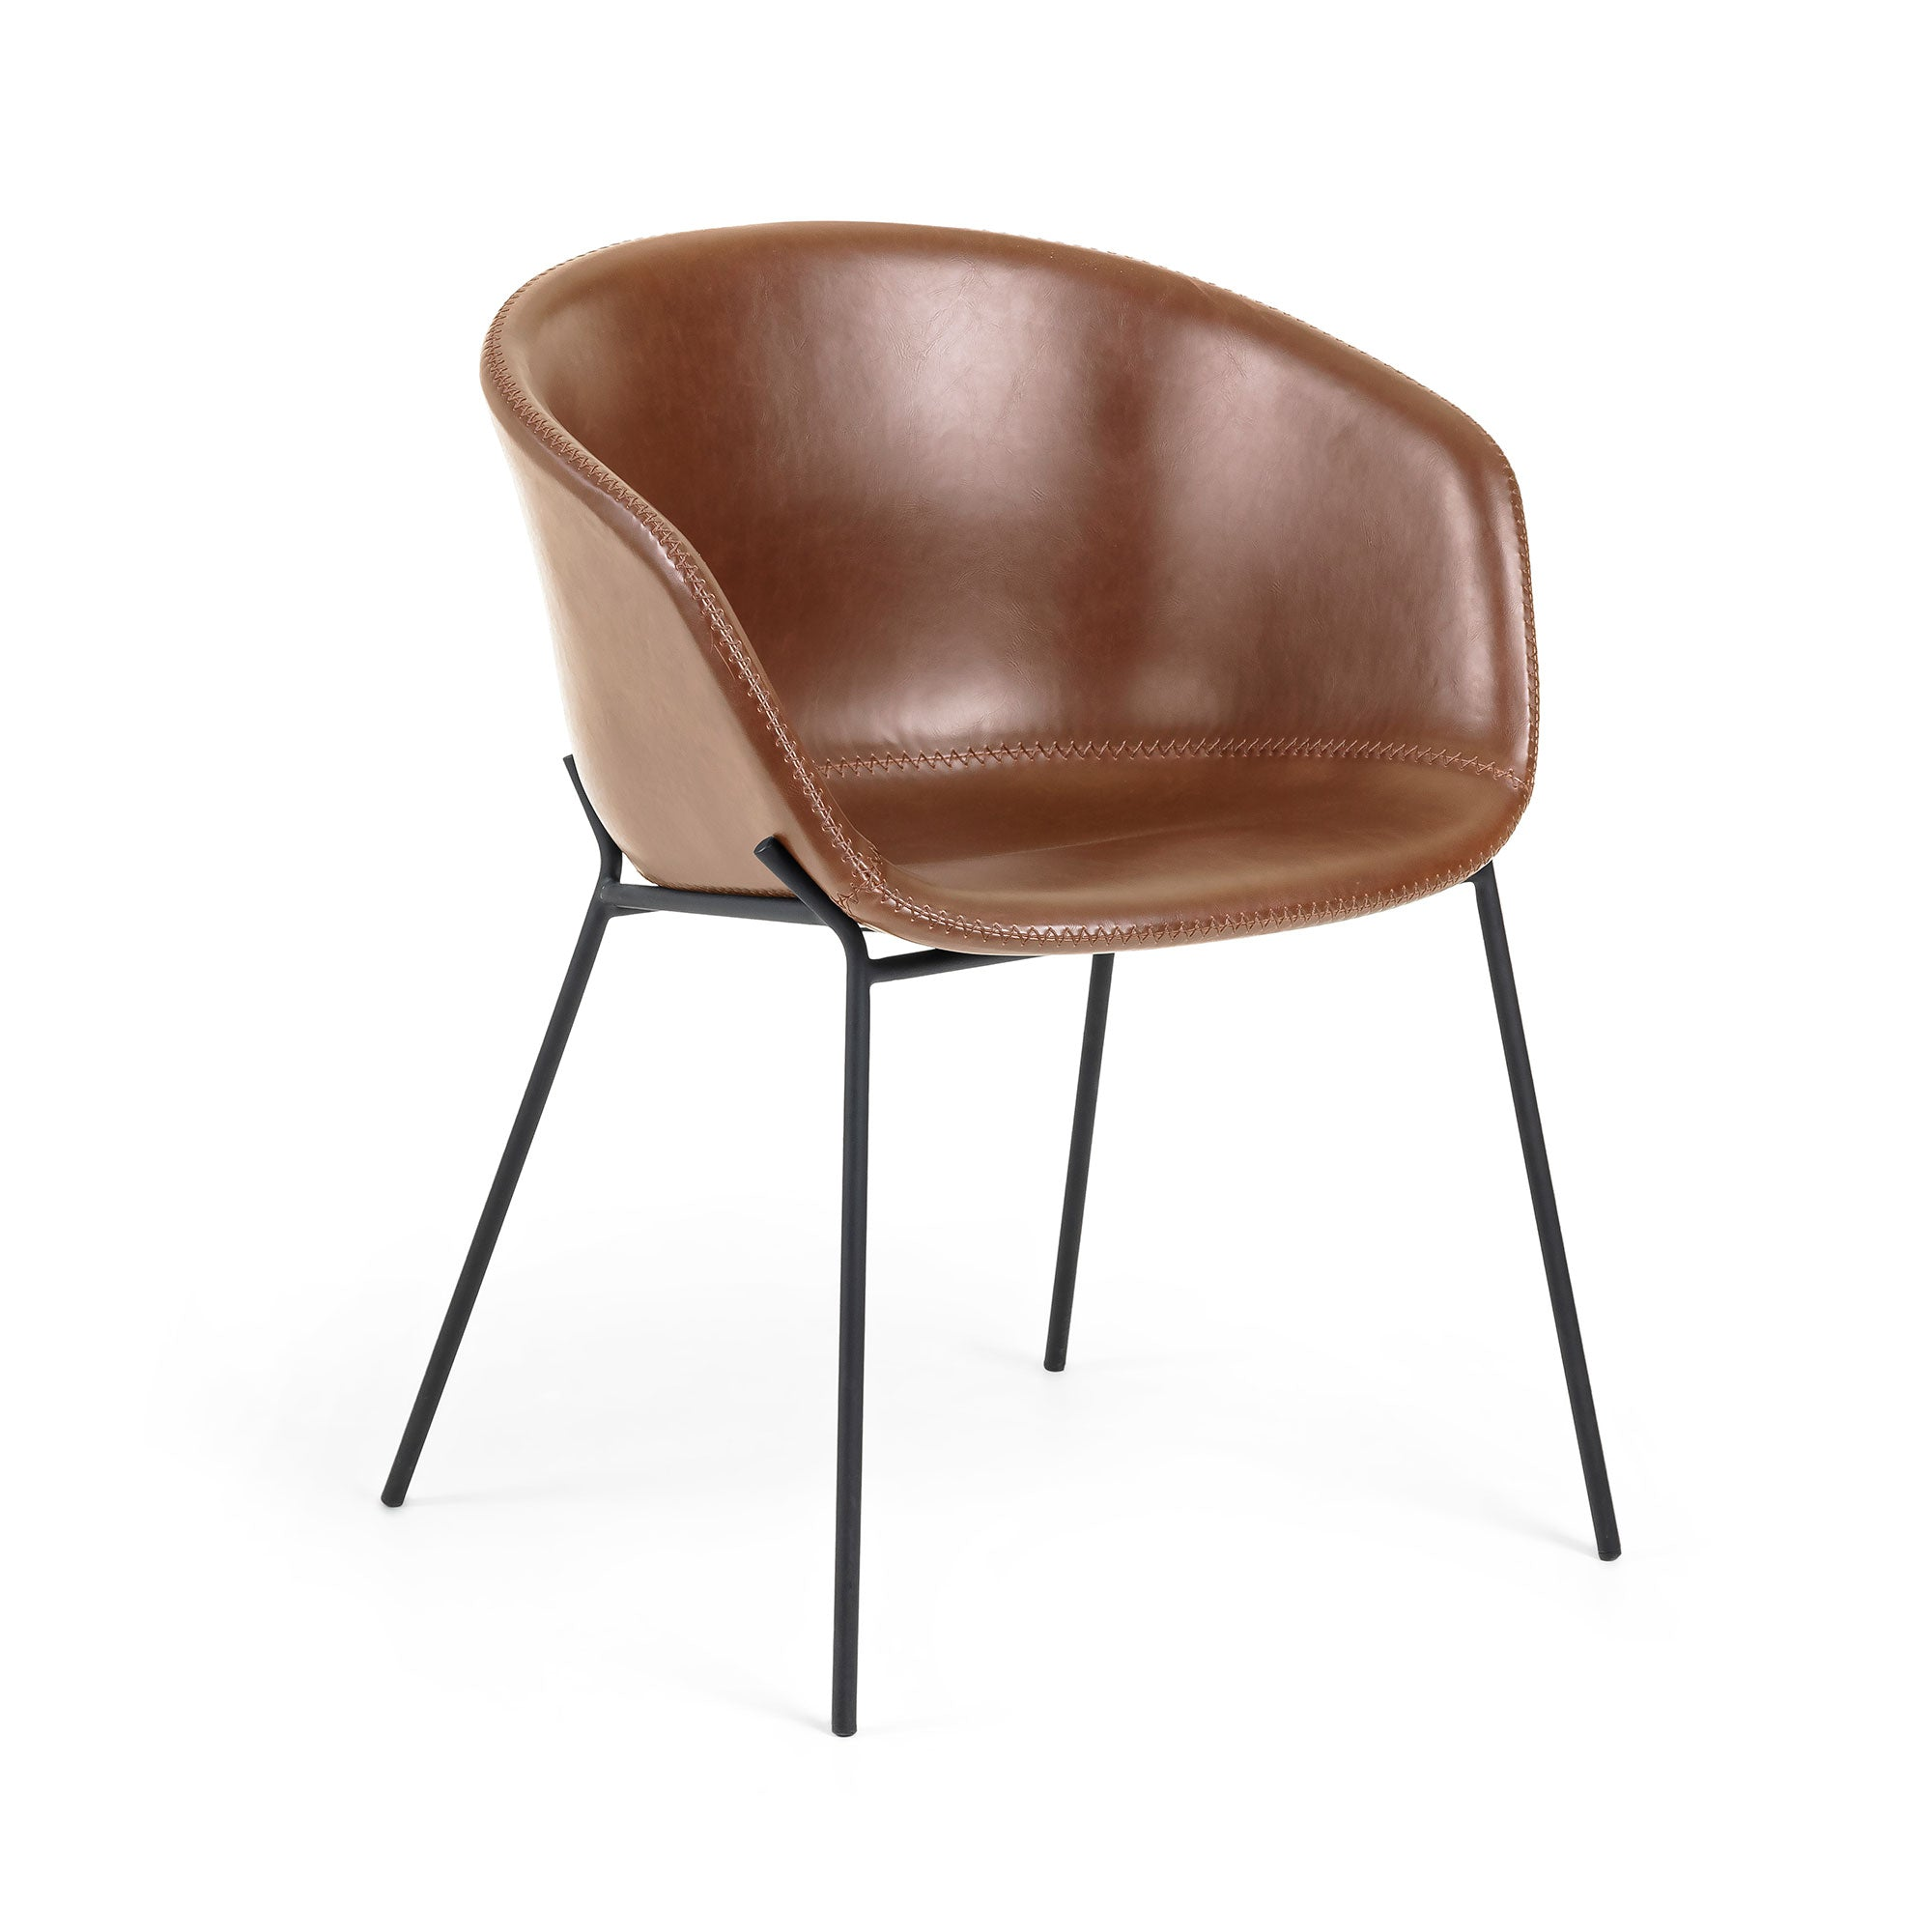 Modine Dining Chair | Rust